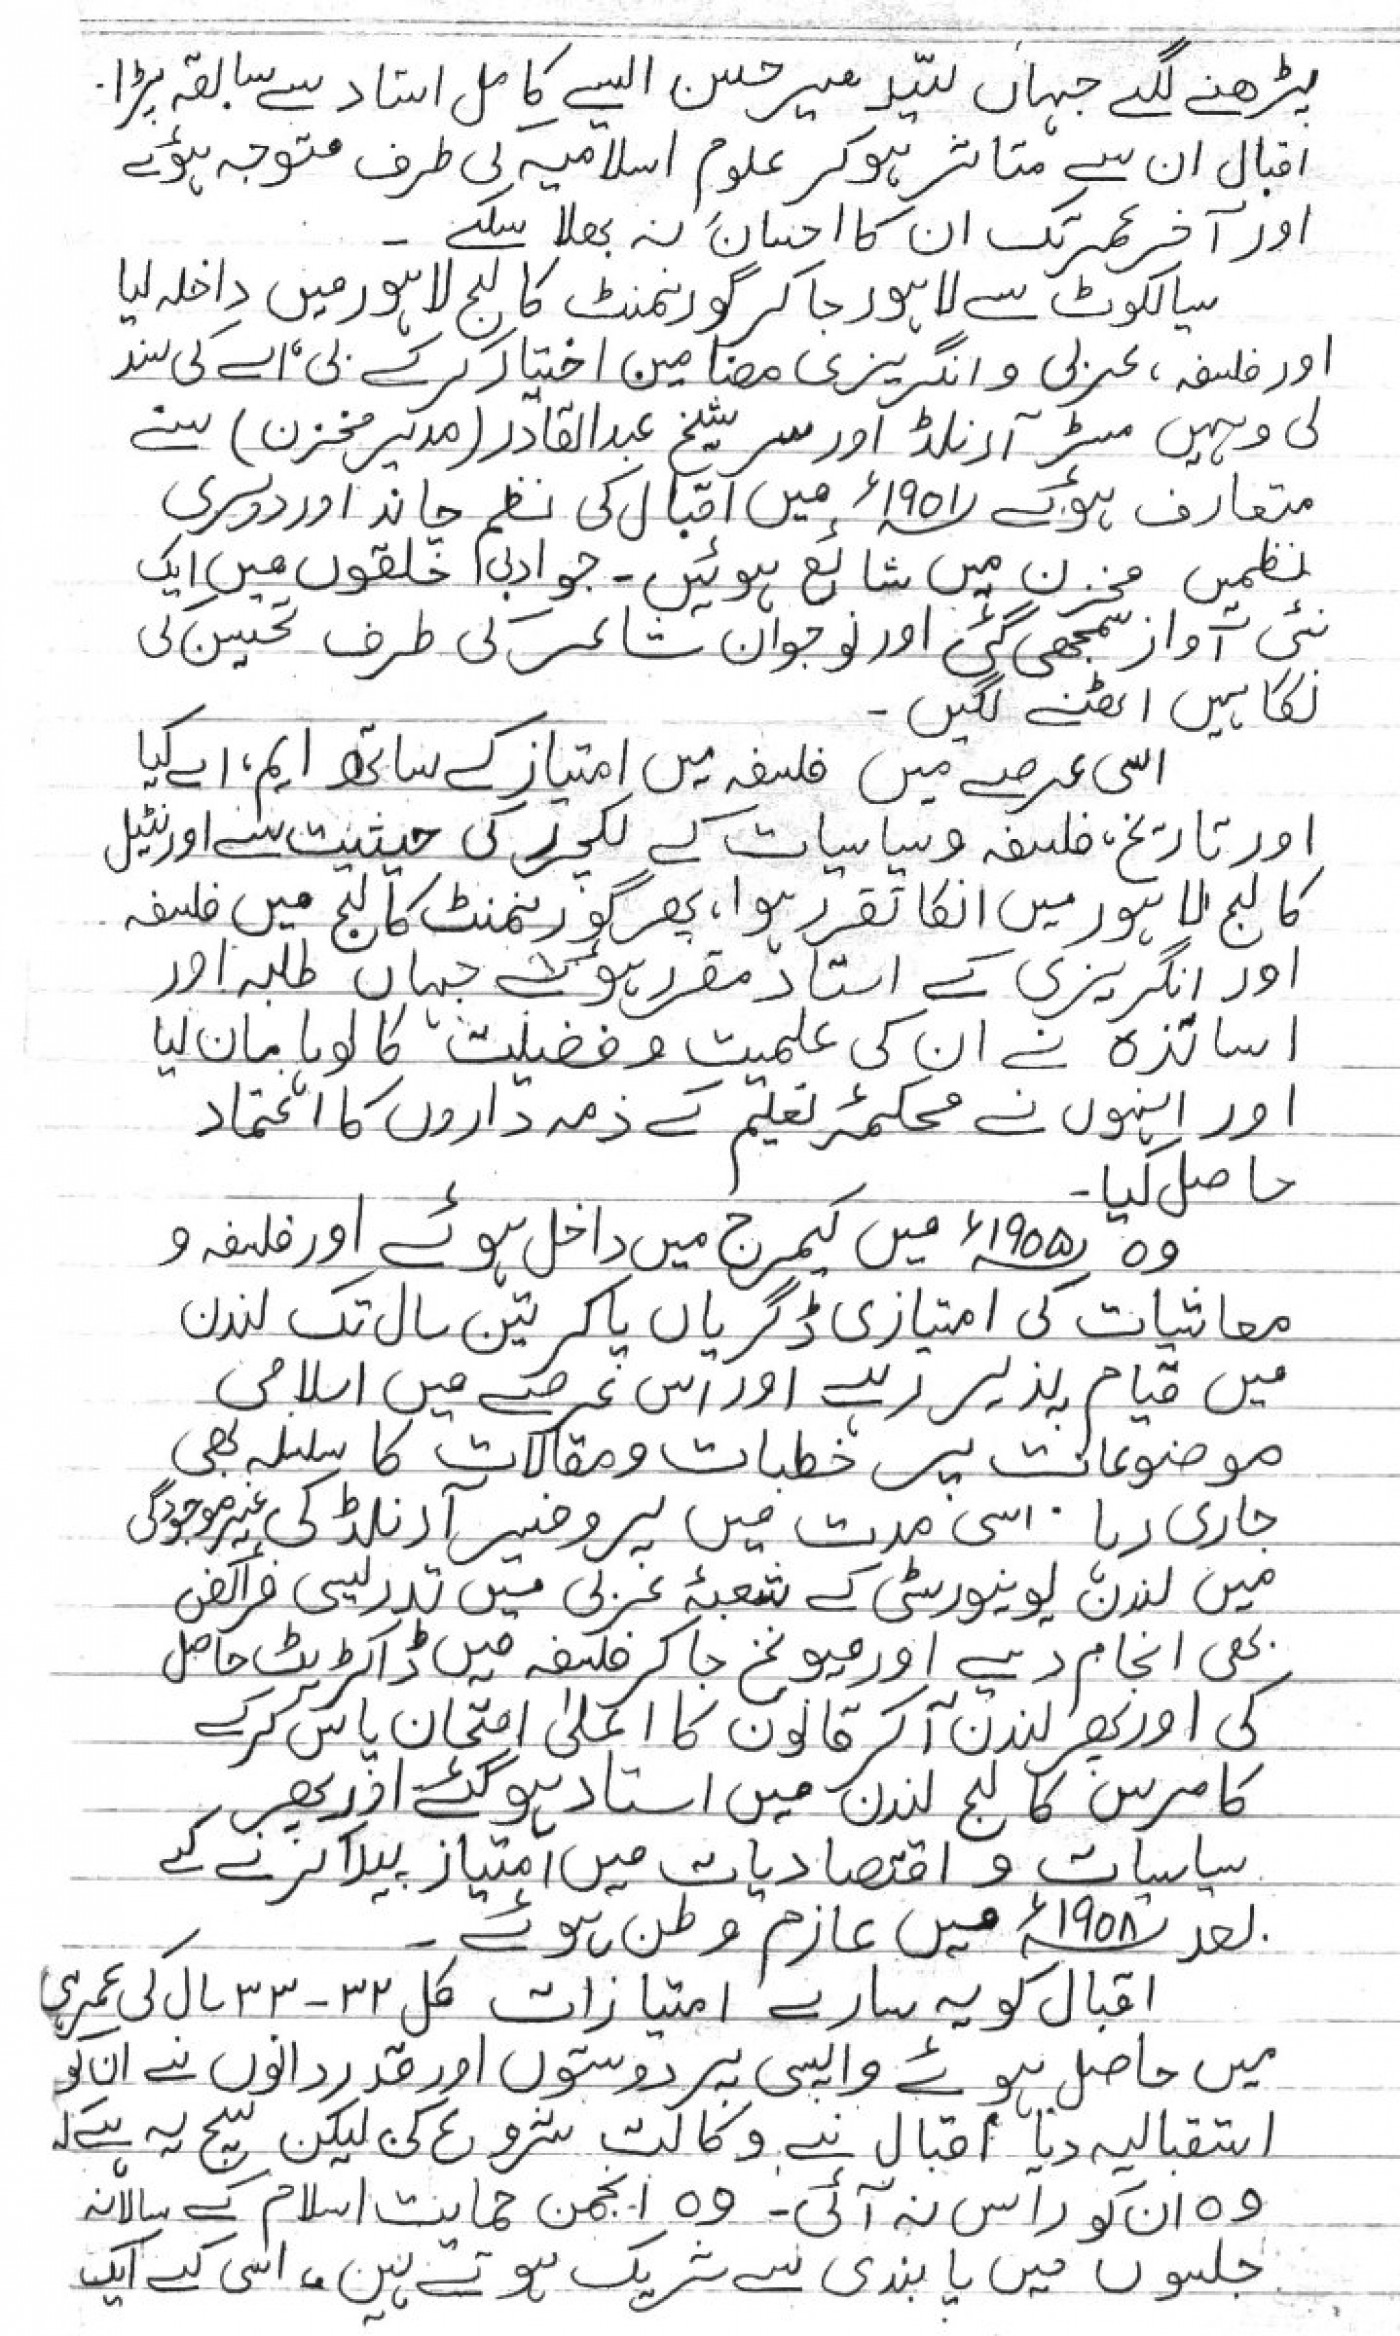 008 Jpg Essay Example Urdu Allama Dreaded Iqbal On In For Class 10 With Poetry Ka Shaheen Headings And 1400